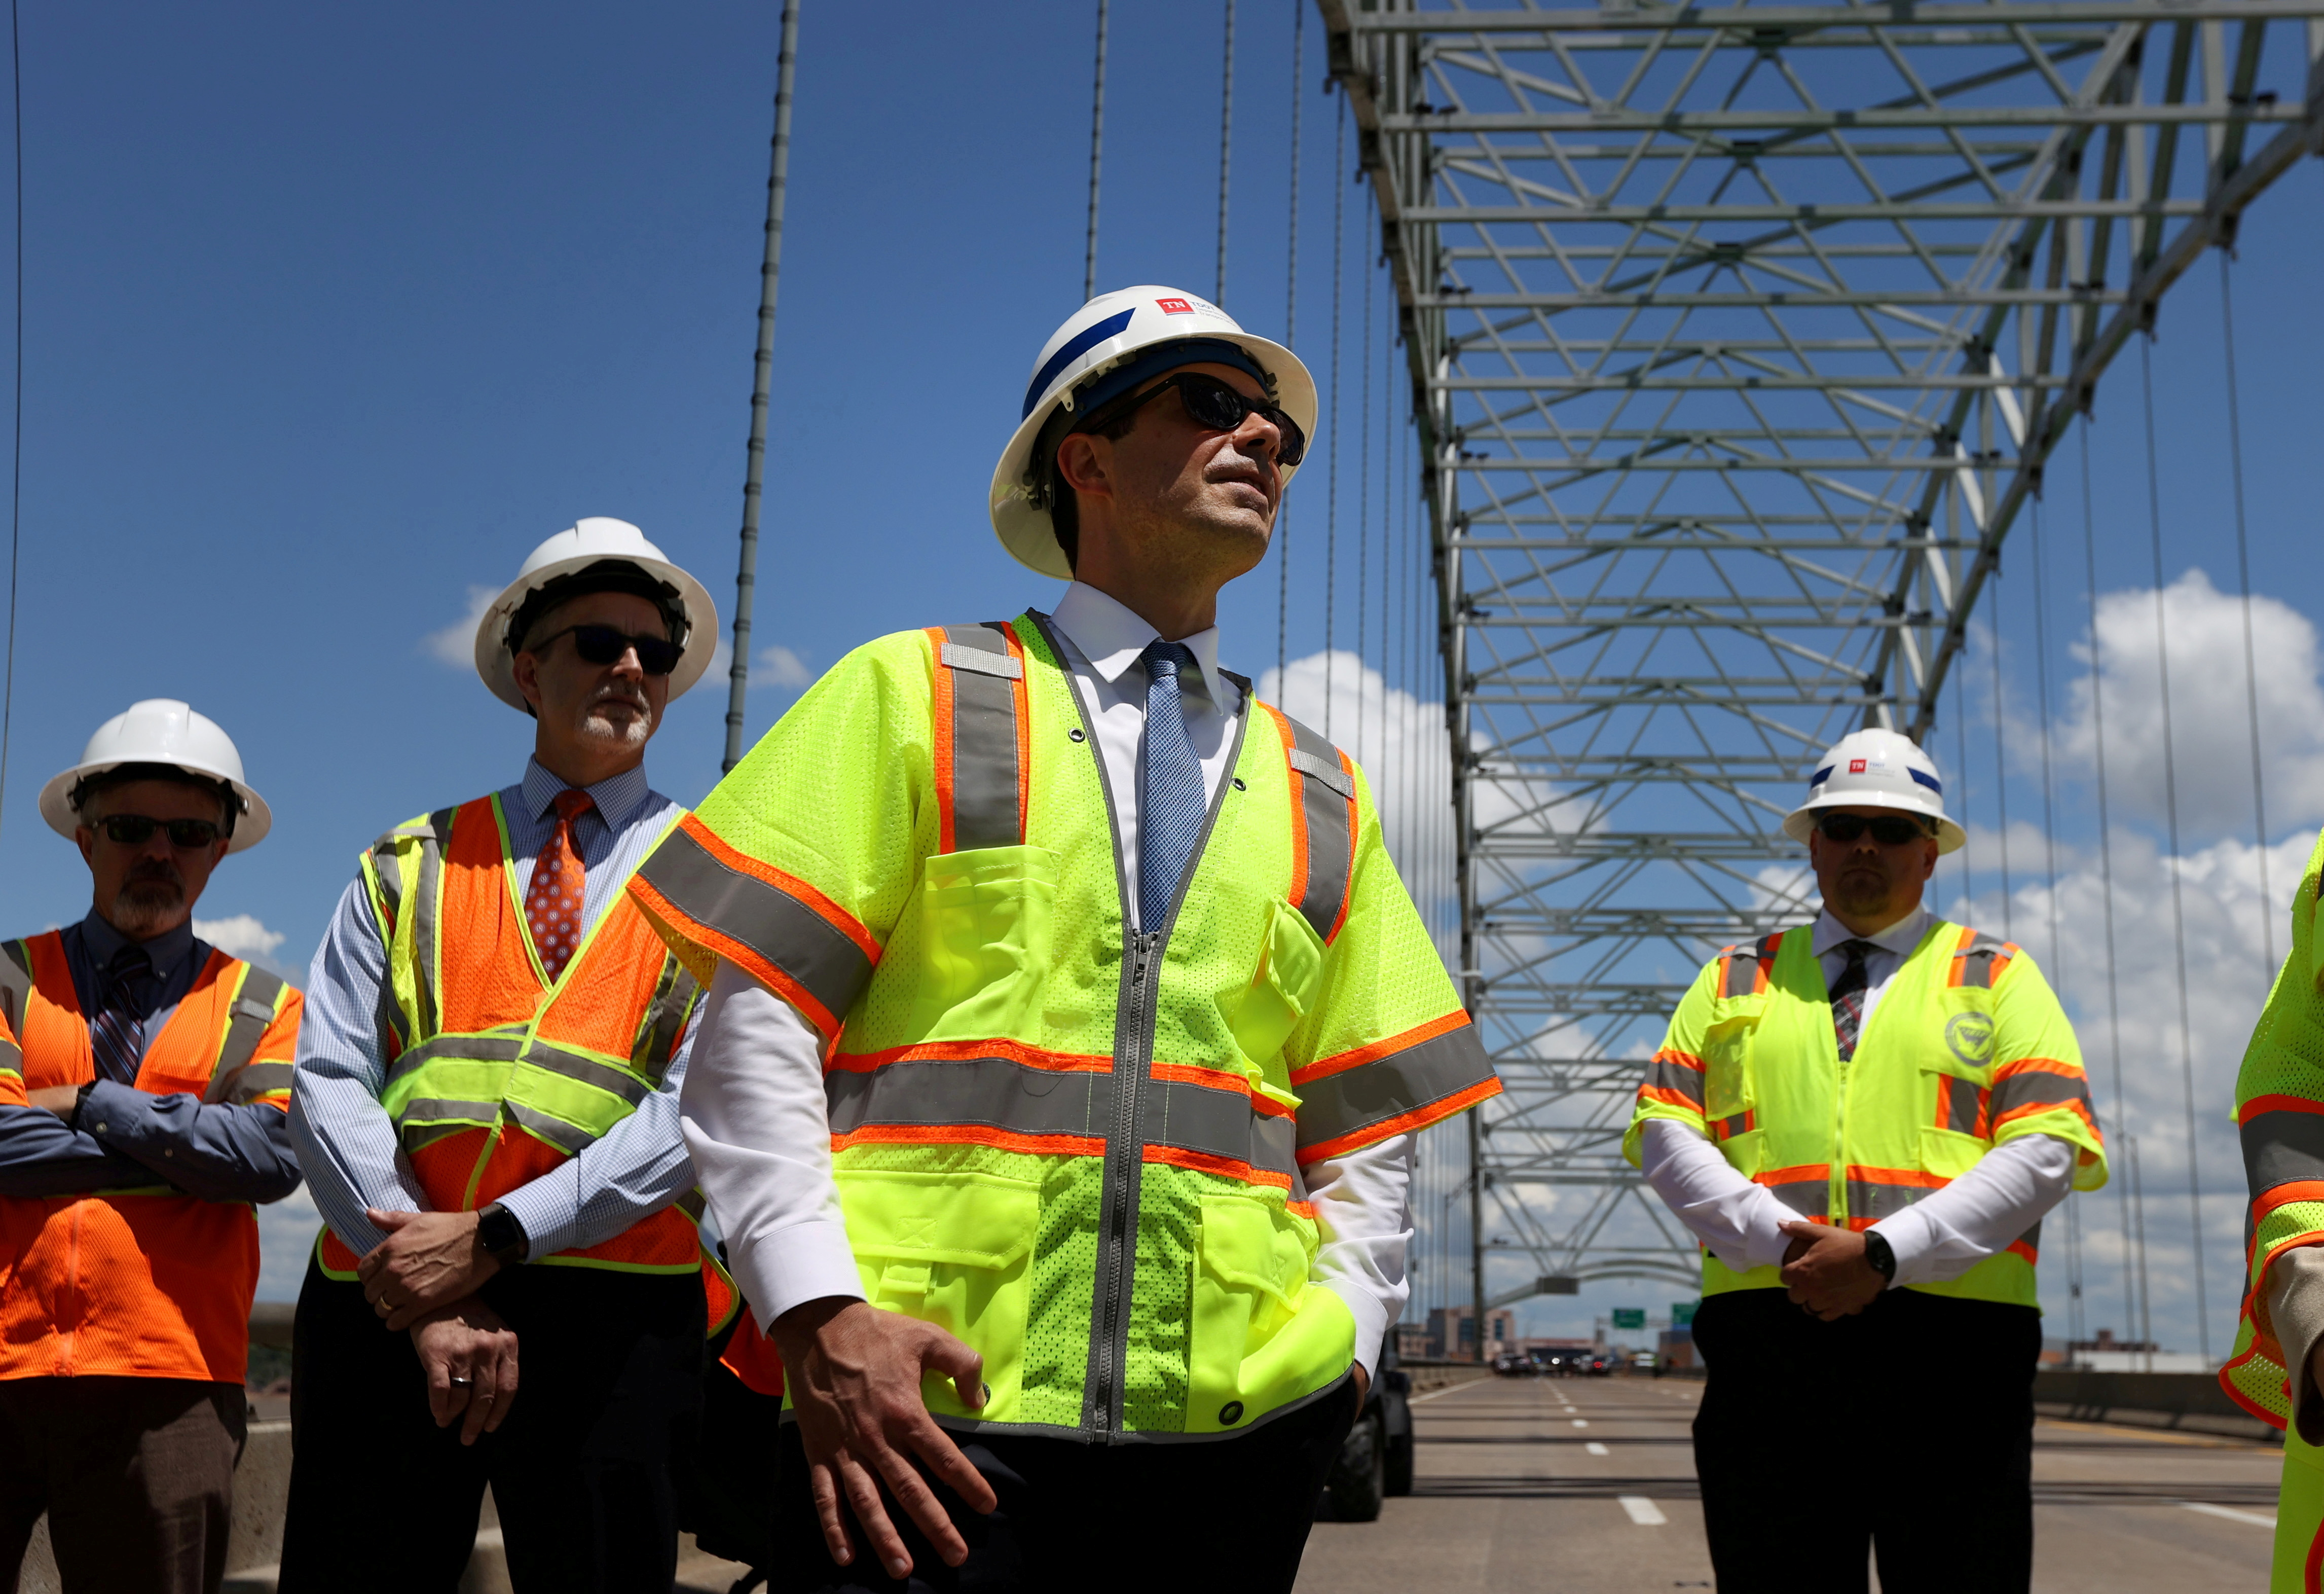 U.S. Secretary of Transportation Pete Buttigieg tours the closed Hernando De Soto bridge which carries Interstate 40 across the Mississippi River between West Memphis, Arkansas, and Memphis, Tennessee, U.S. June 3, 2021. Joe Rondone/The Commercial Appeal/Pool via REUTERS/File Photo